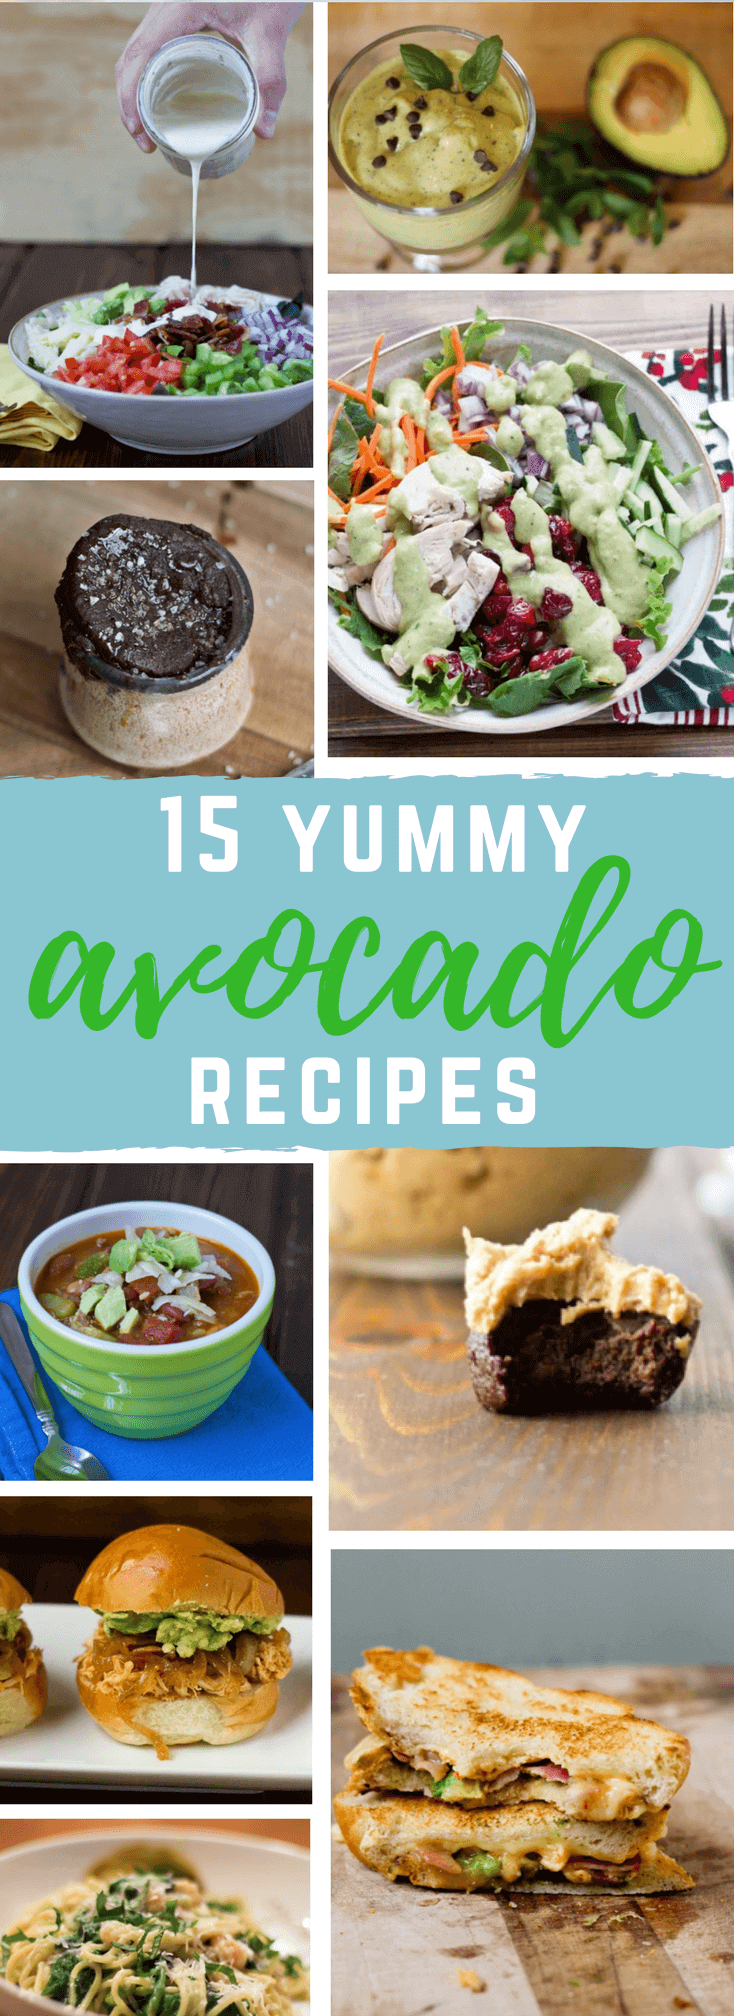 Nutritional Benefits of Eating Avocados | 15 Avocado Recipes You'll Love